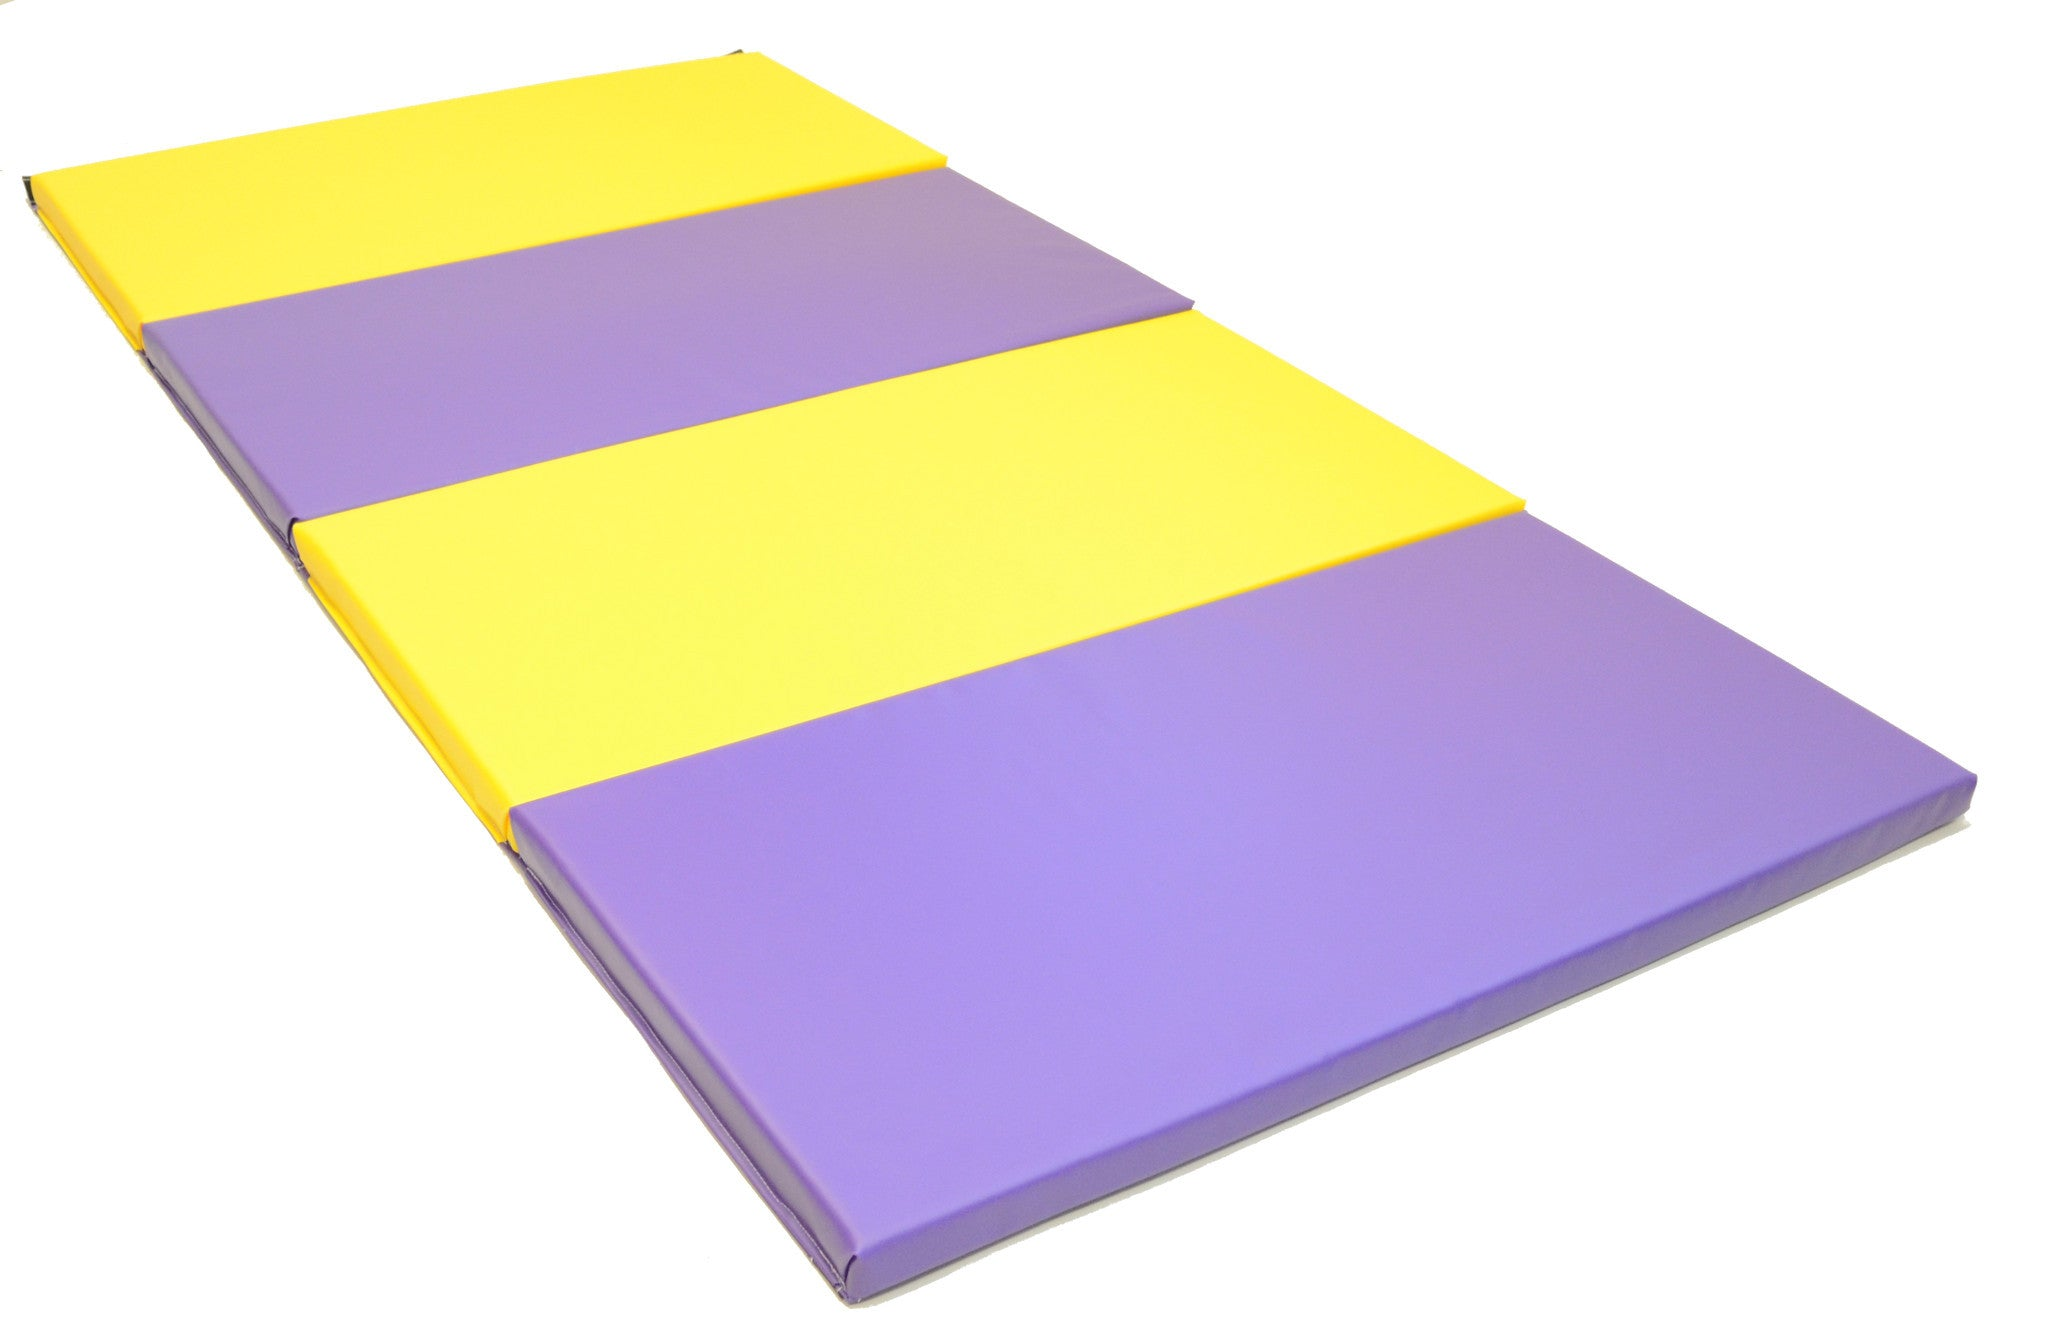 "CLEARANCE LOWEST PRICE OF THE YEAR 4' x 8' x 1 3/8"" -  Advanced Level Folding Gymnastics Mat"